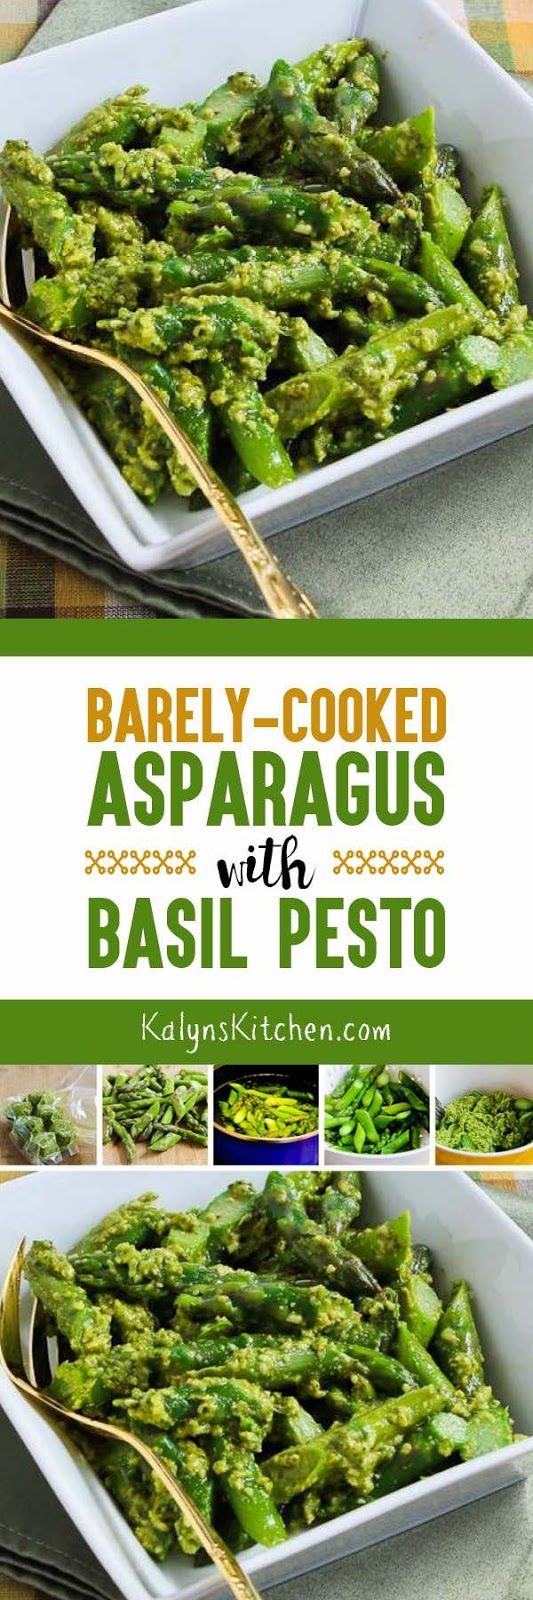 Barely-Cooked Asparagus with Basil Pesto is a simple low-carb side dish that's absolutely a wow in the flavor department. And this amazing way to cook asparagus is also Keto, low-glycemic, gluten-free, and South Beach Diet friendly. [found on KalynsKitchen.com]